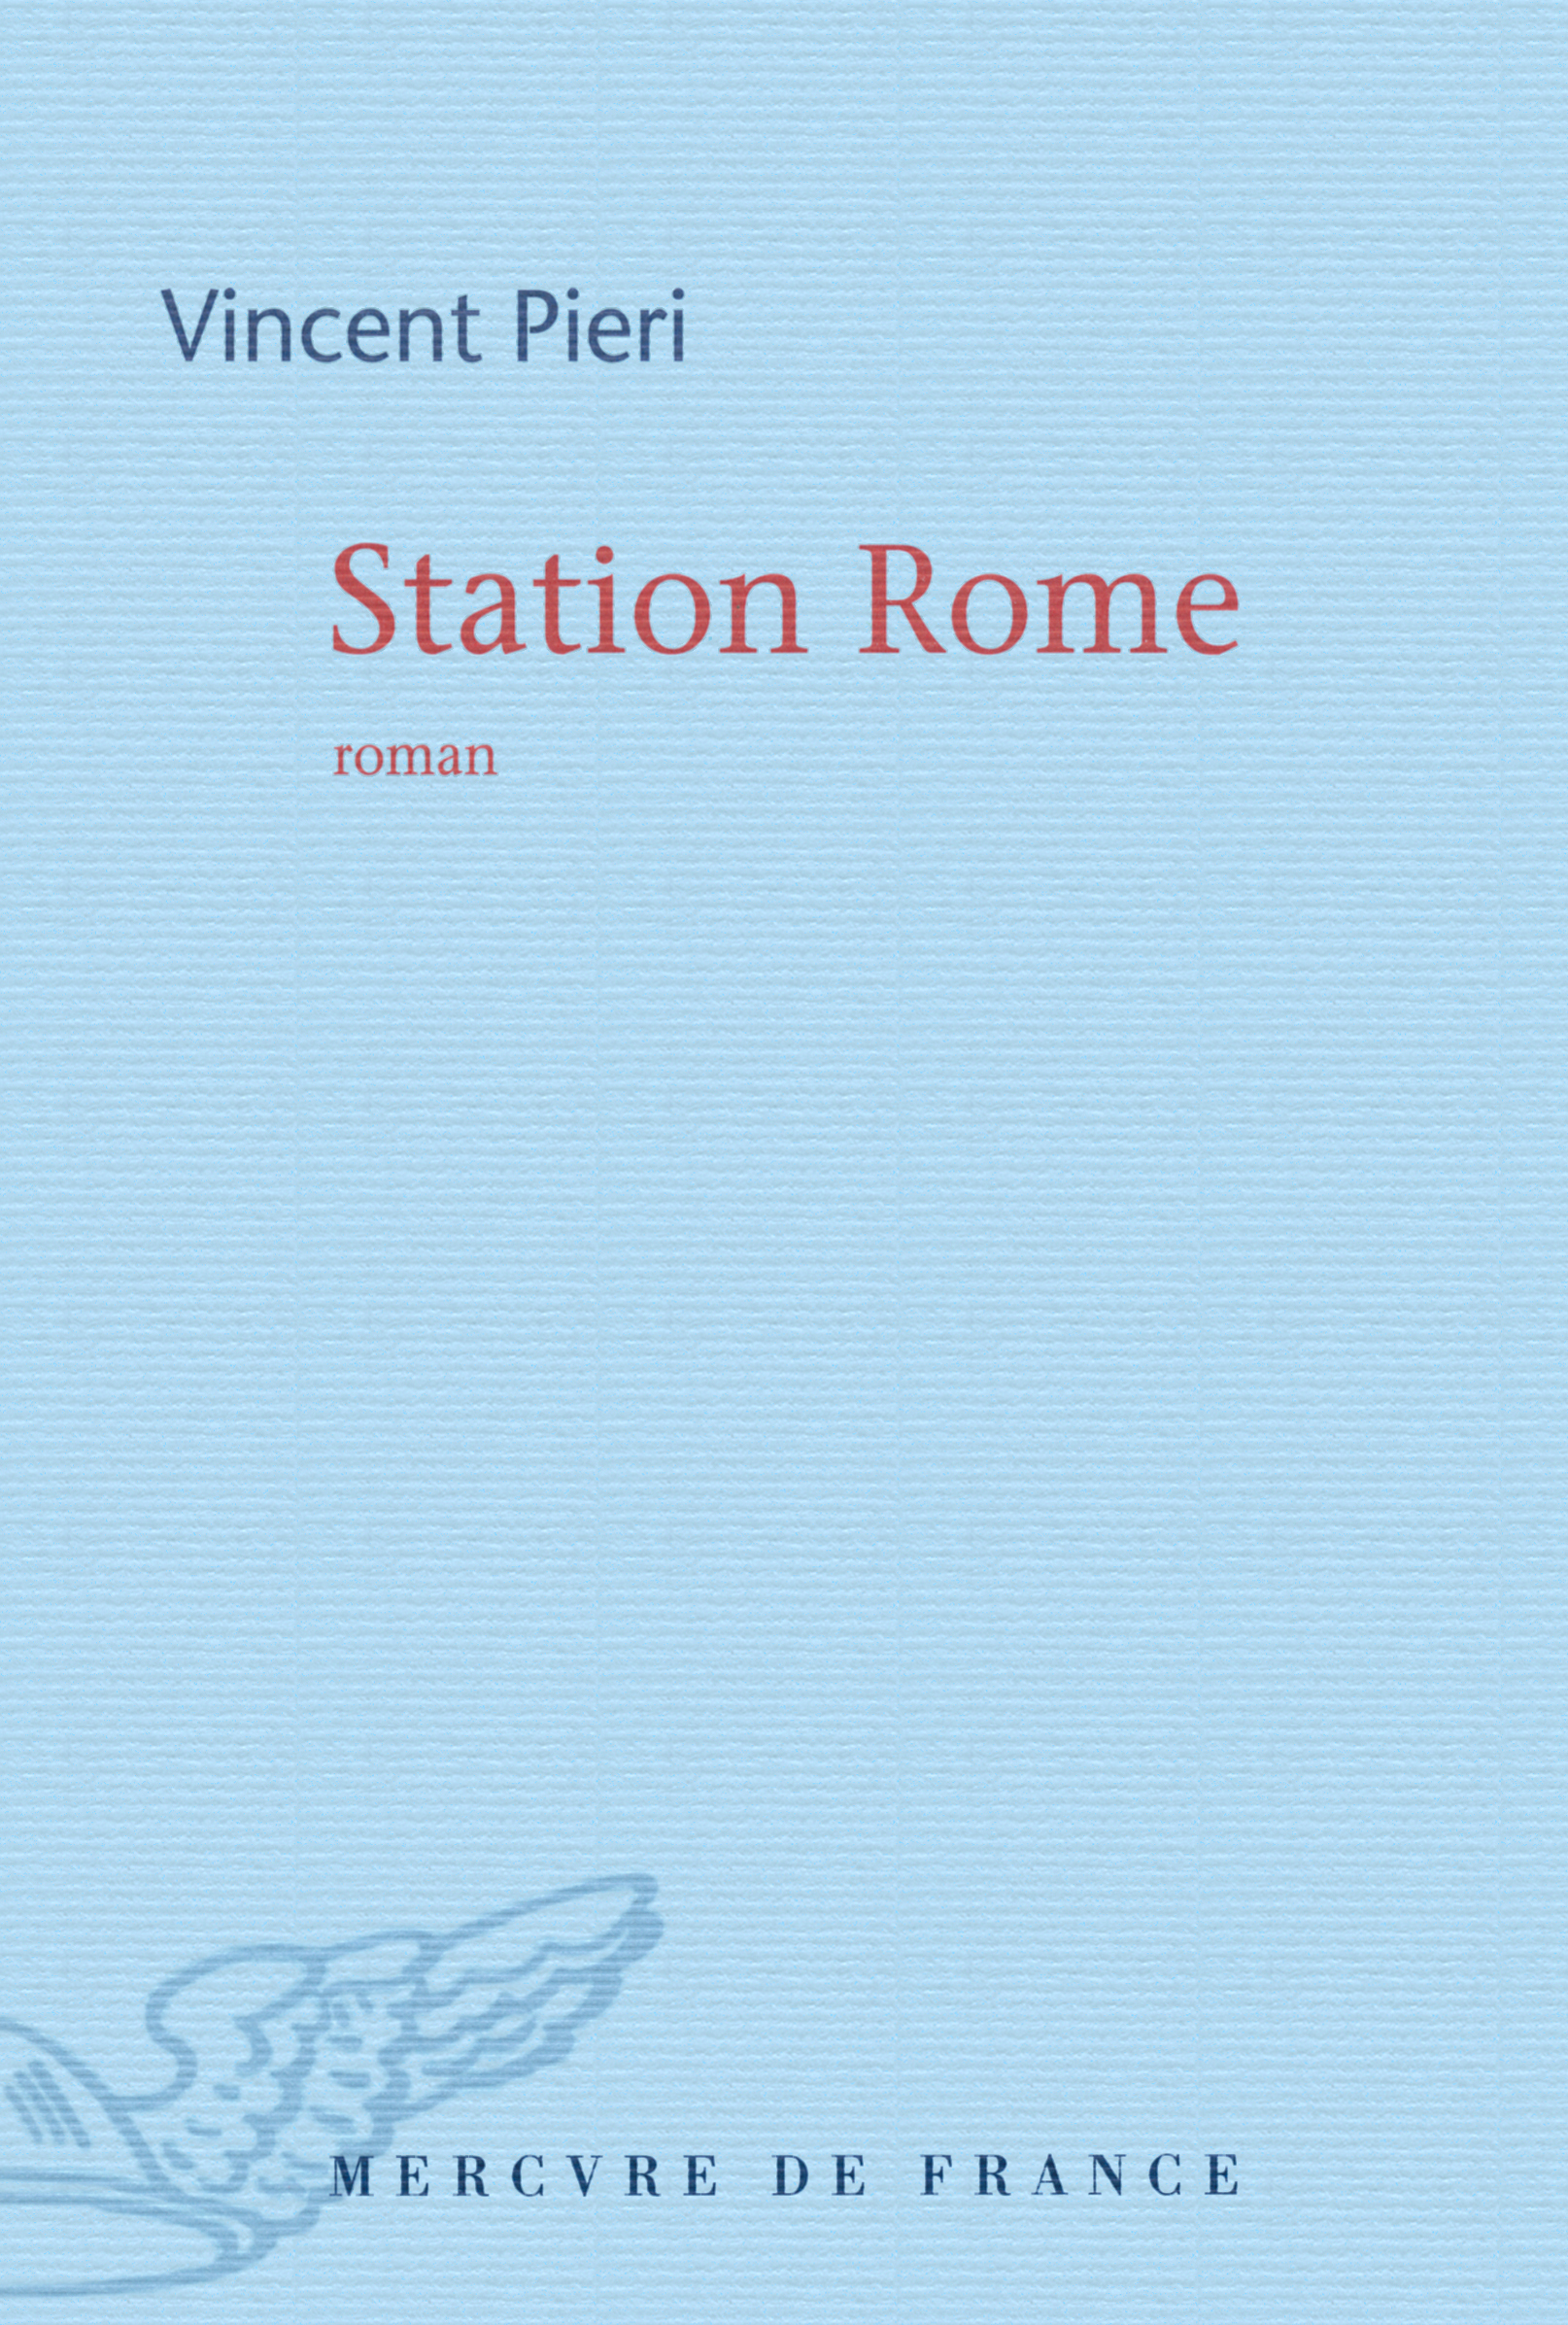 Station Rome